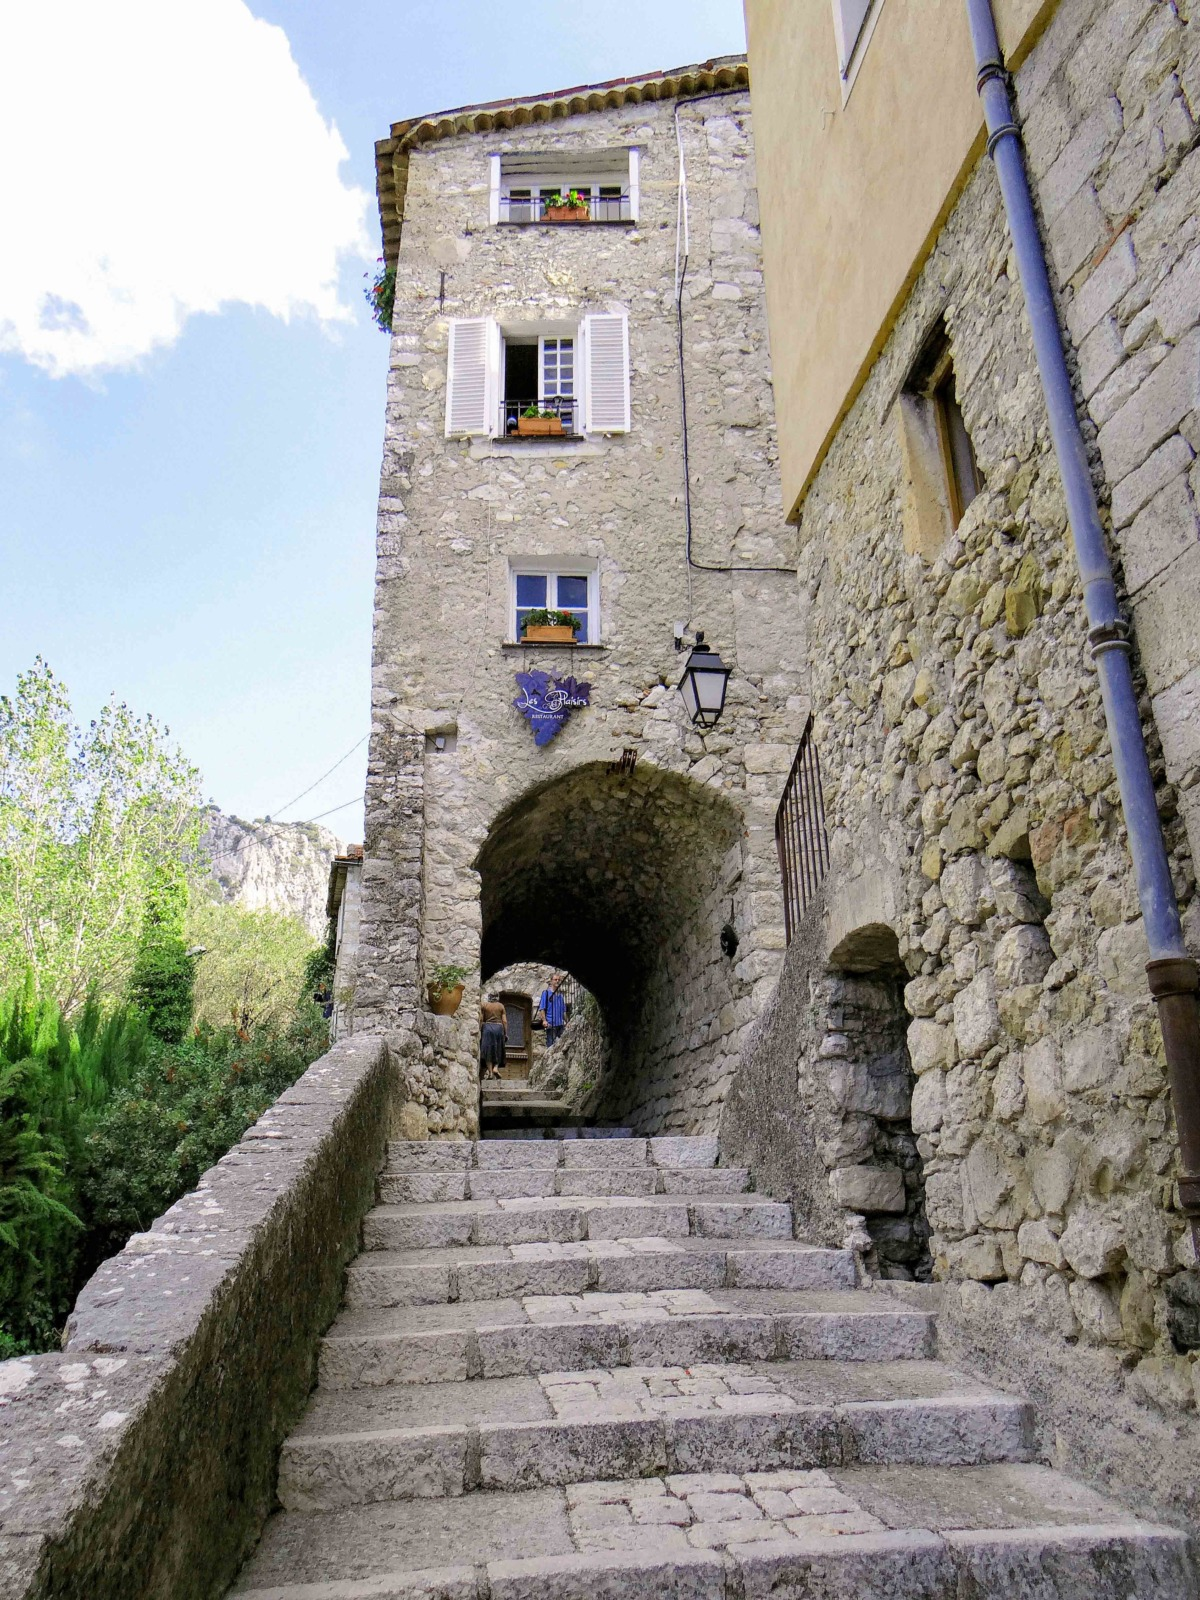 The street of Peillon with stairs and vaulted passages © Mossot - licence [CC BY-SA 3.0] from Wikimedia Commons